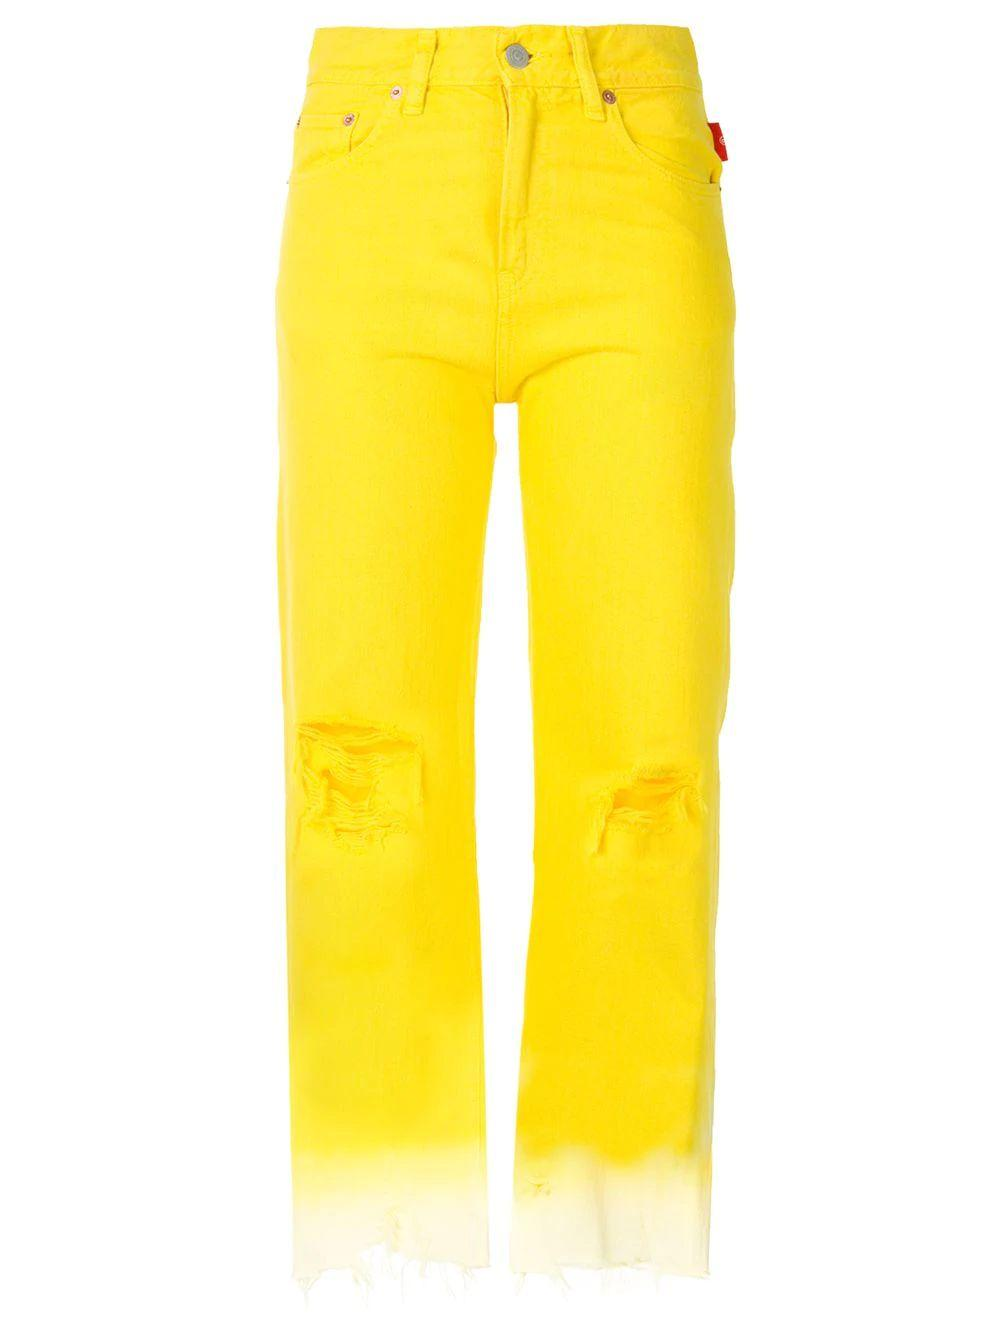 Pierce Dip Dye High Rise Cropped Jeans